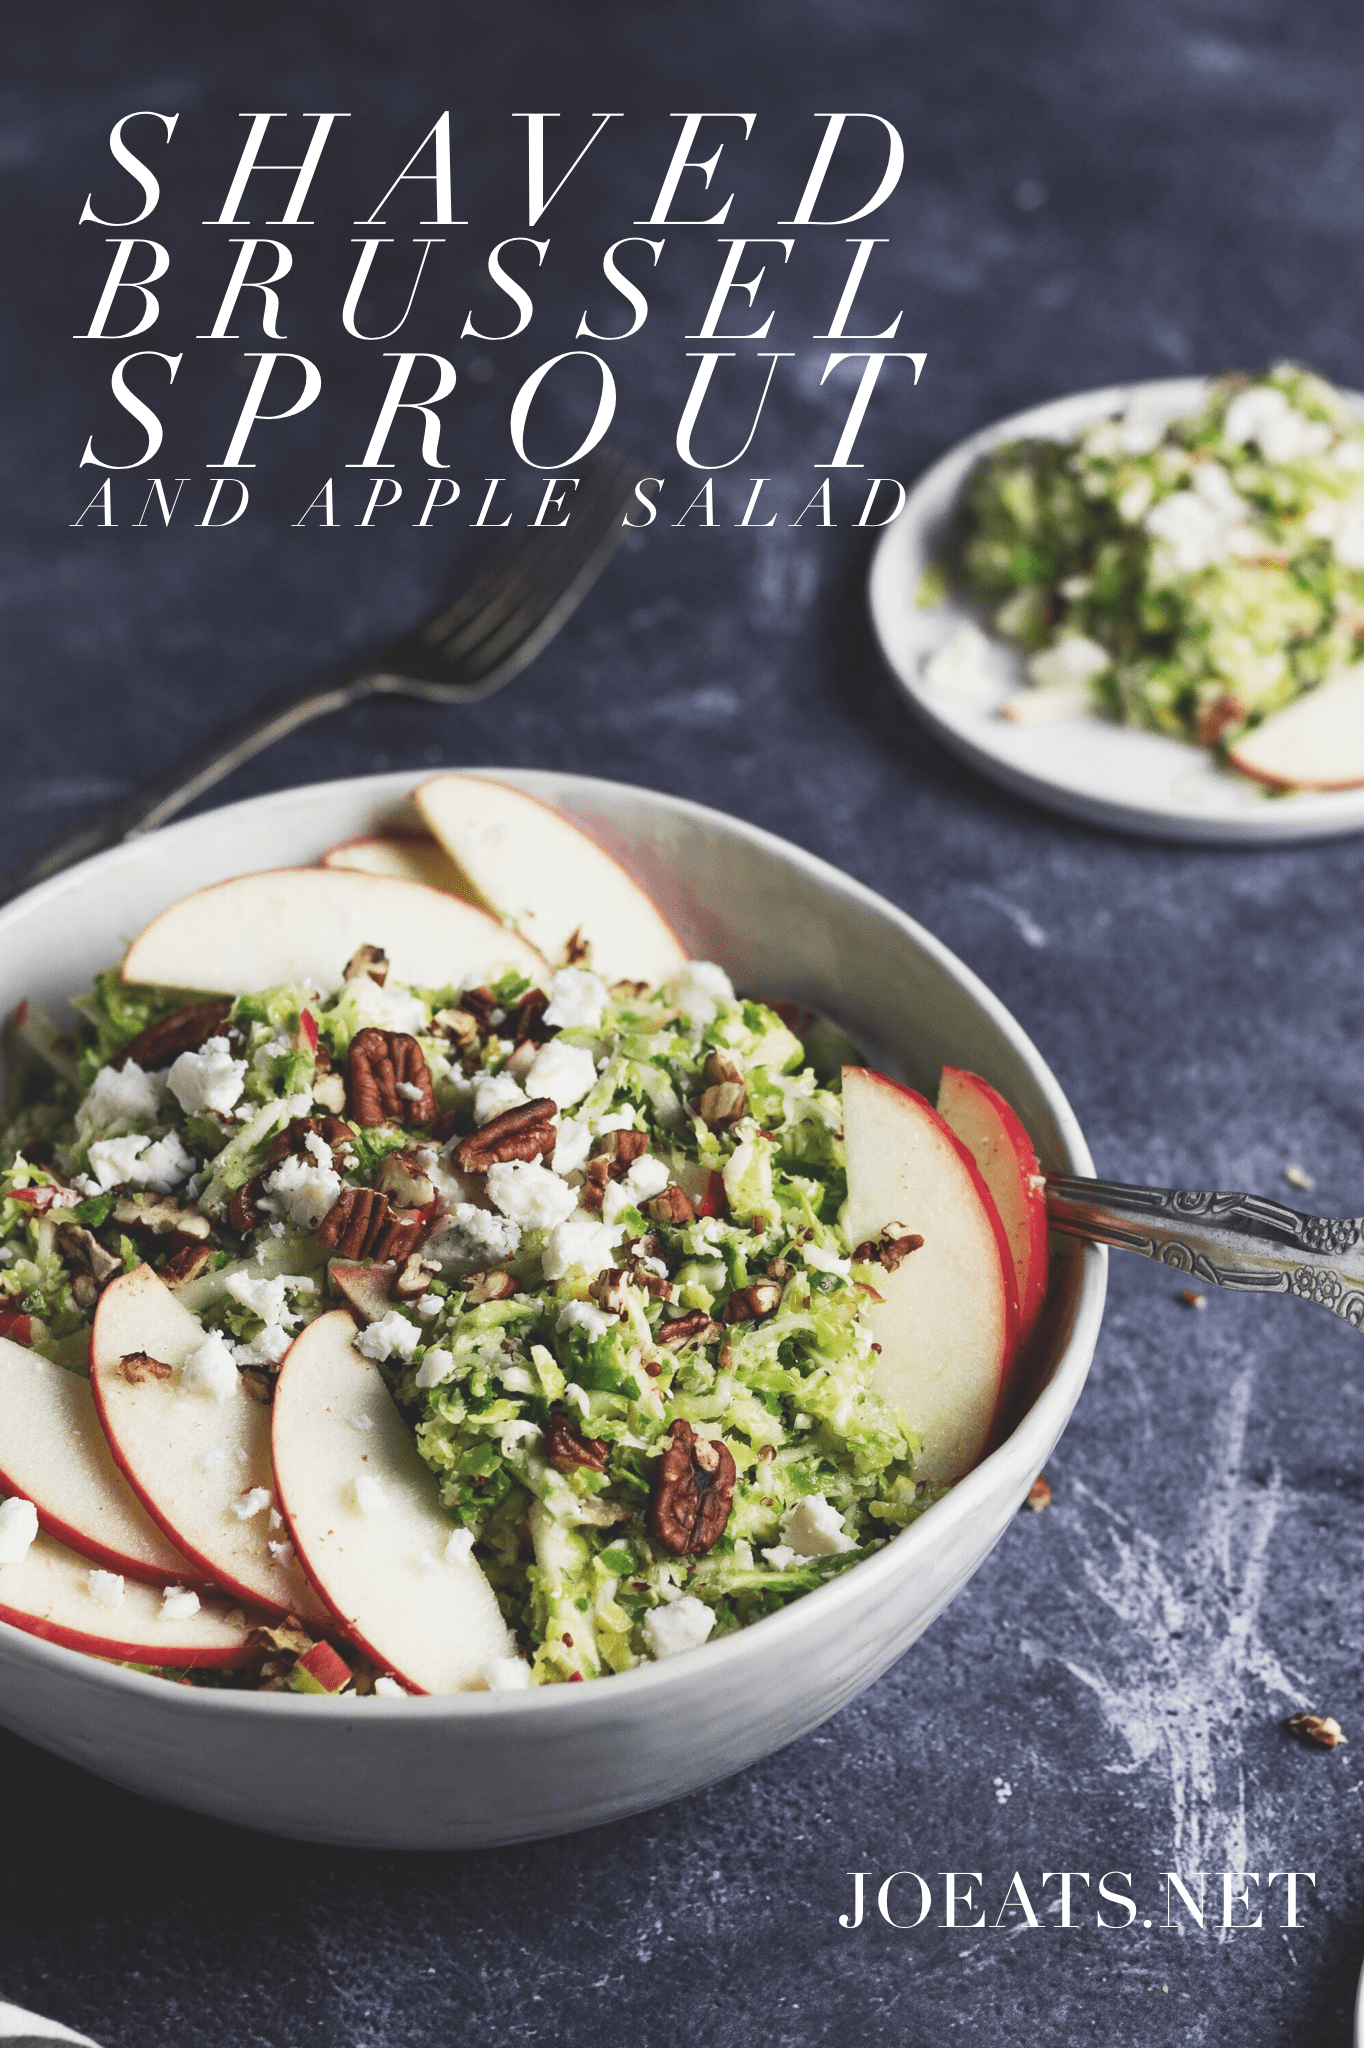 Brussel sprout and apple salad with pecans and blue cheese in a serving bowl. Small white plate with salad in the background and fork, with text overlay